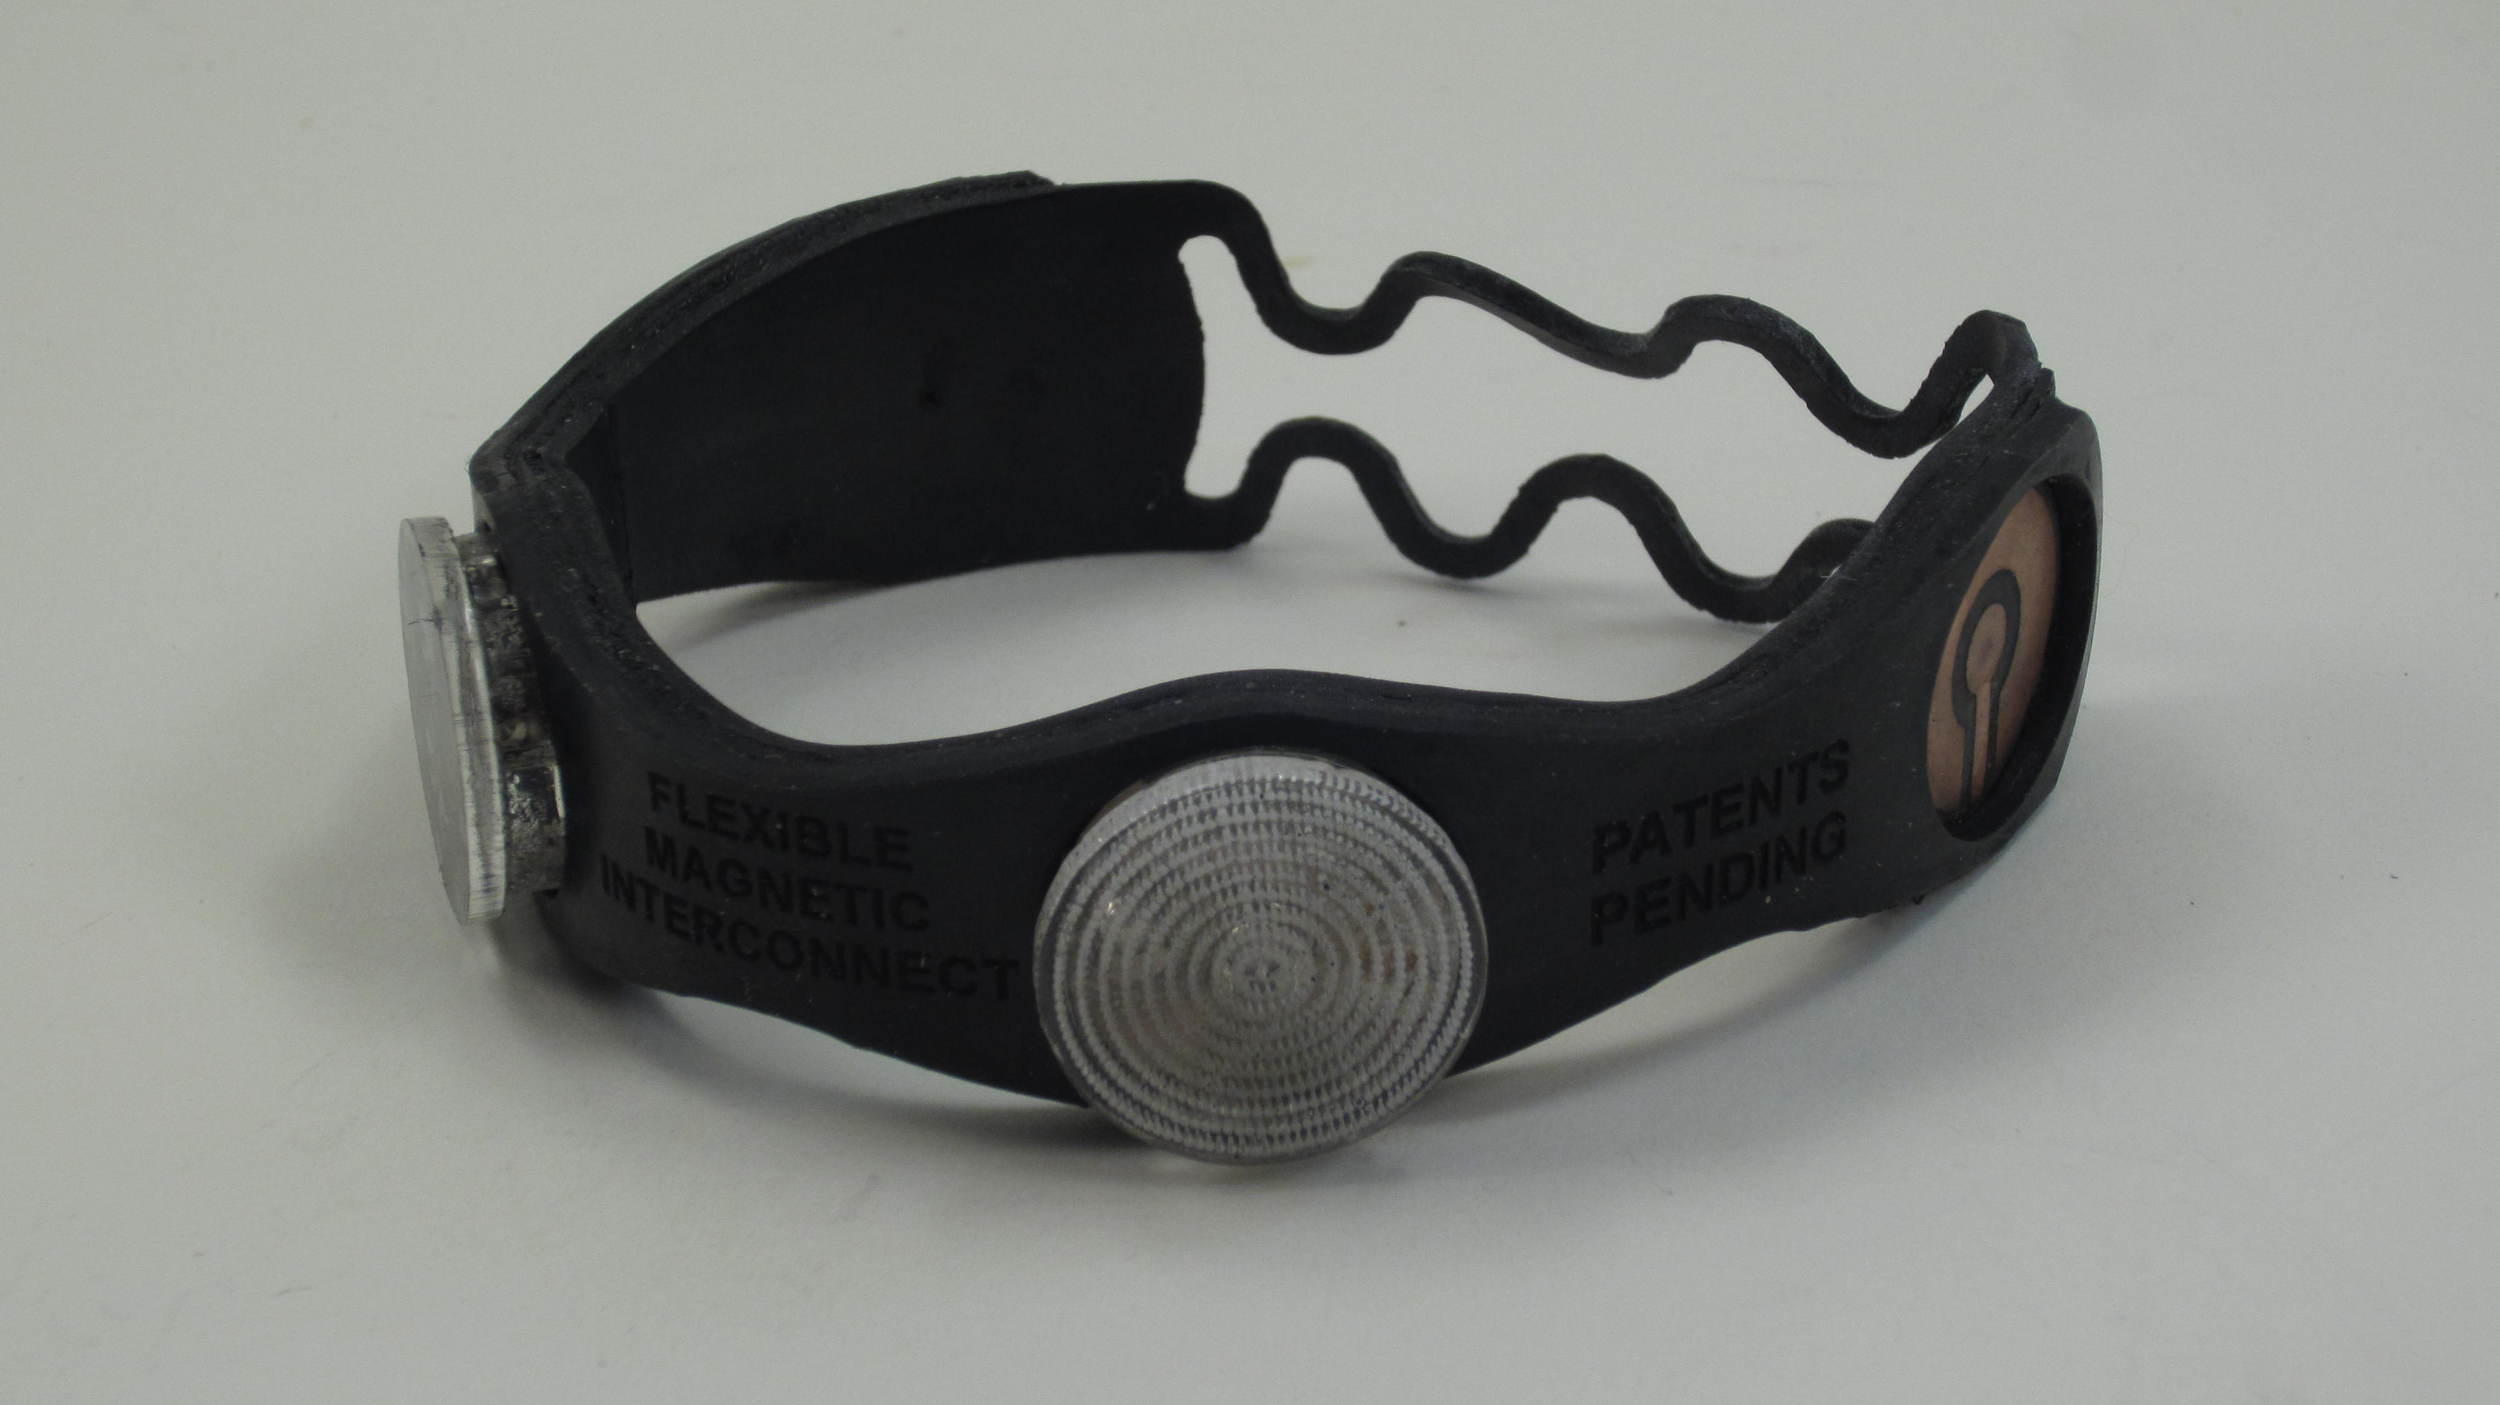 Rubber bracelet with battery puck removed